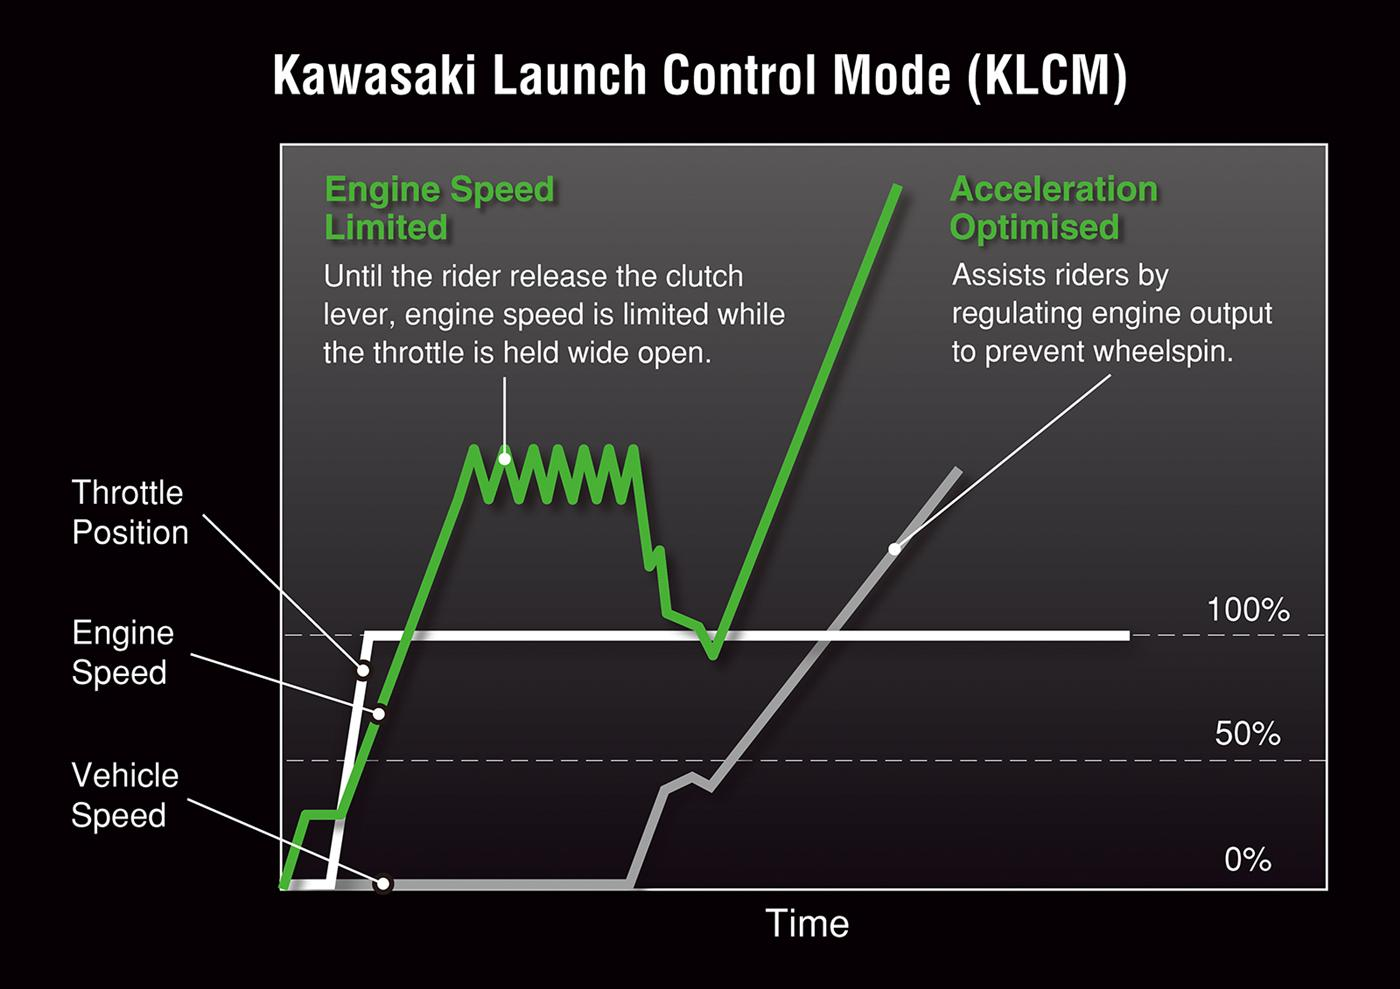 Kawasaki launch control mode speed and throttle position over time